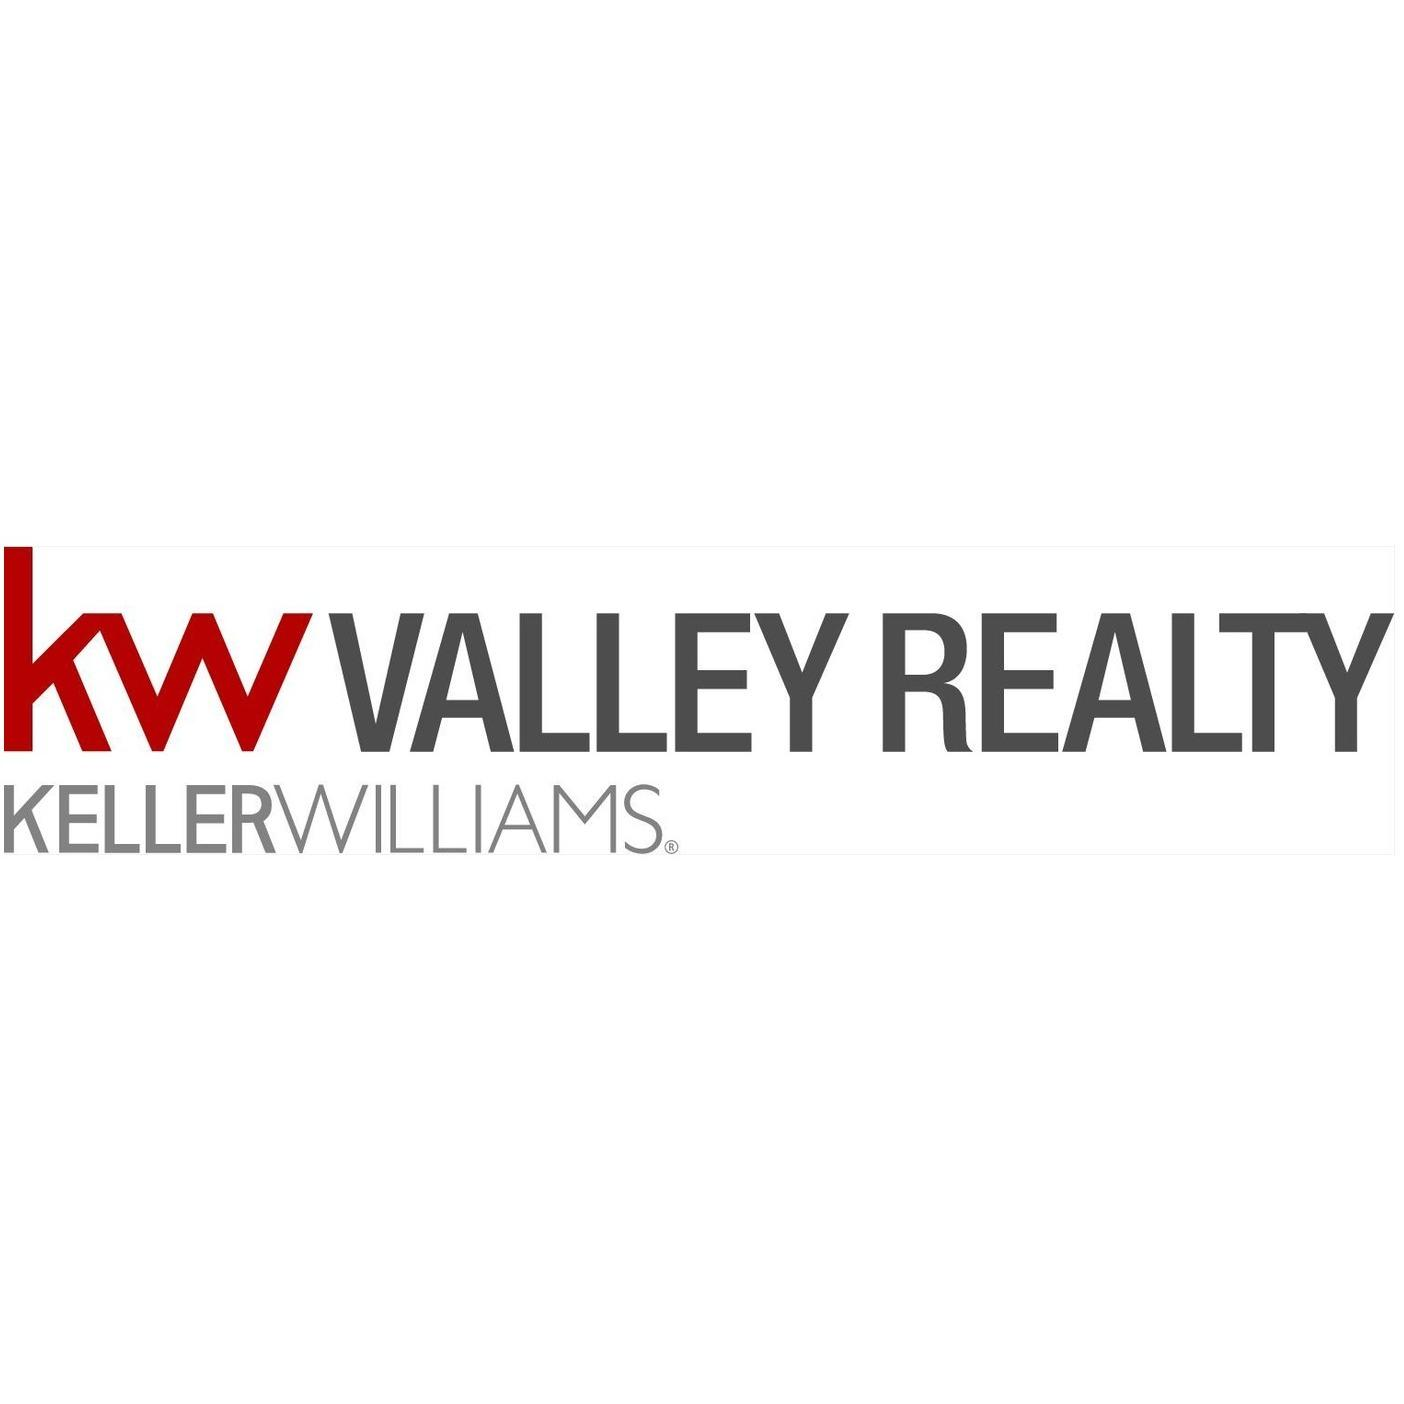 Margaret Hanna | Keller Williams Valley Realty